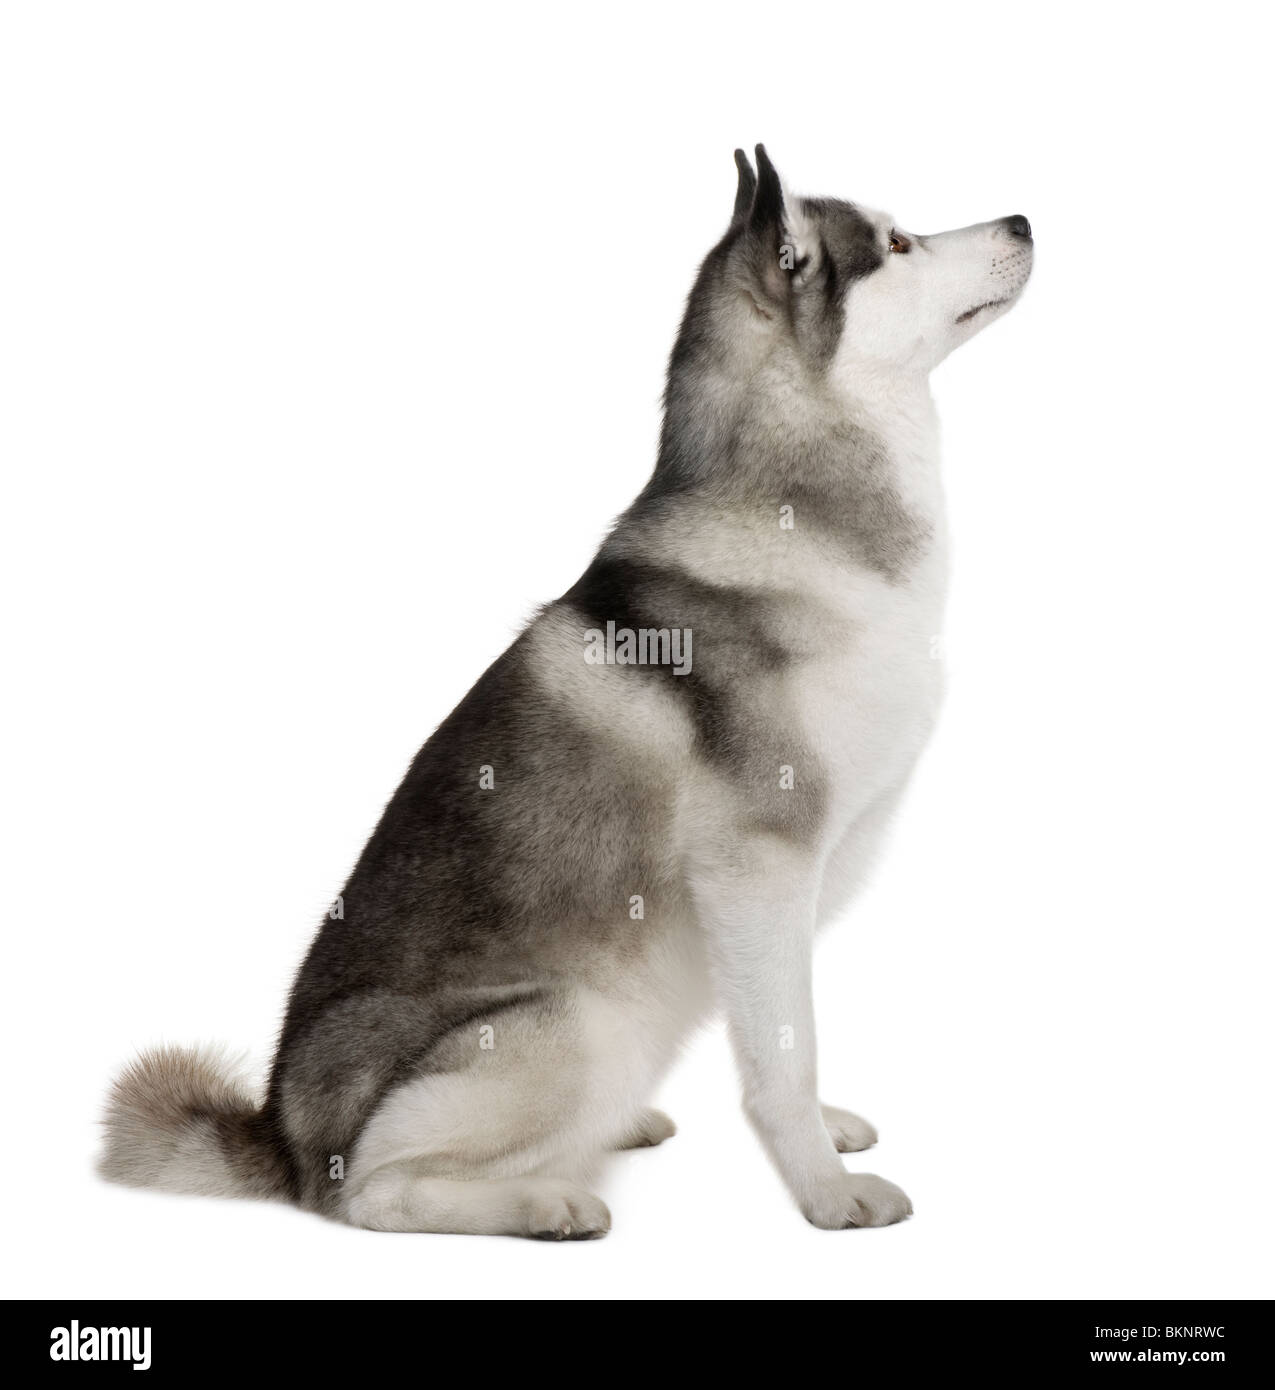 Akita Inu, 3 years old, sitting in front of white background - Stock Image